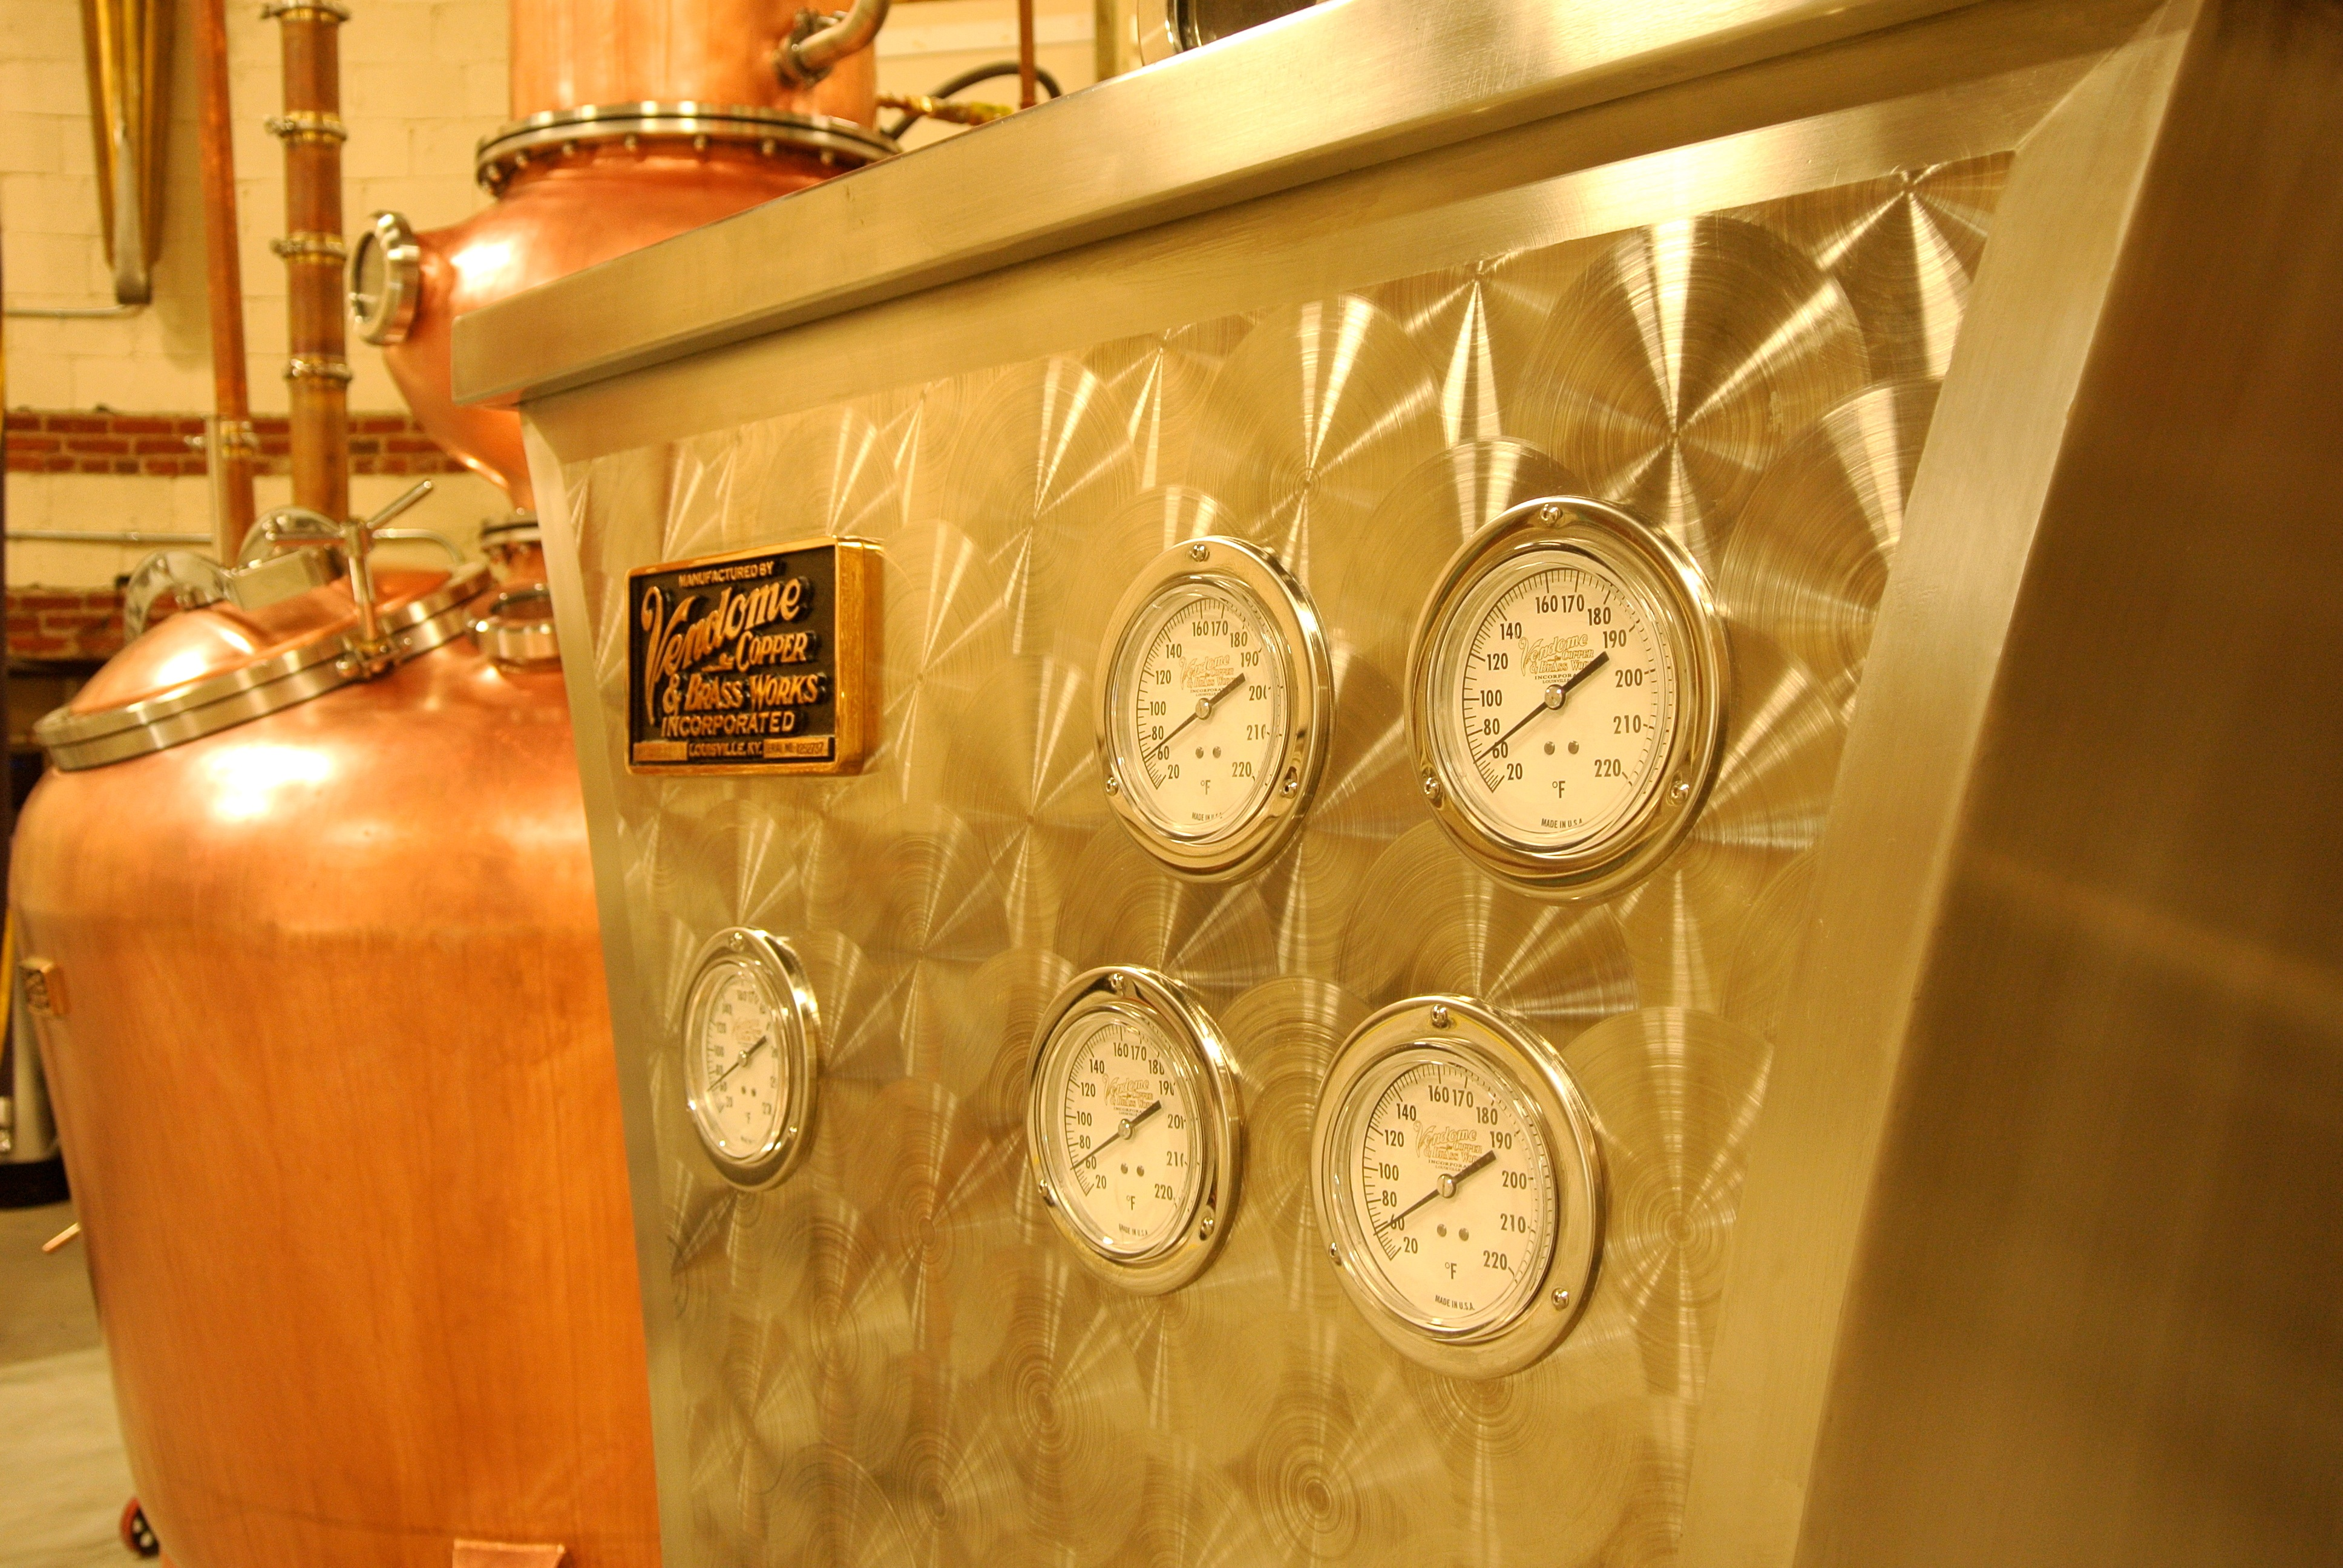 Get to know Painted Stave Distilling